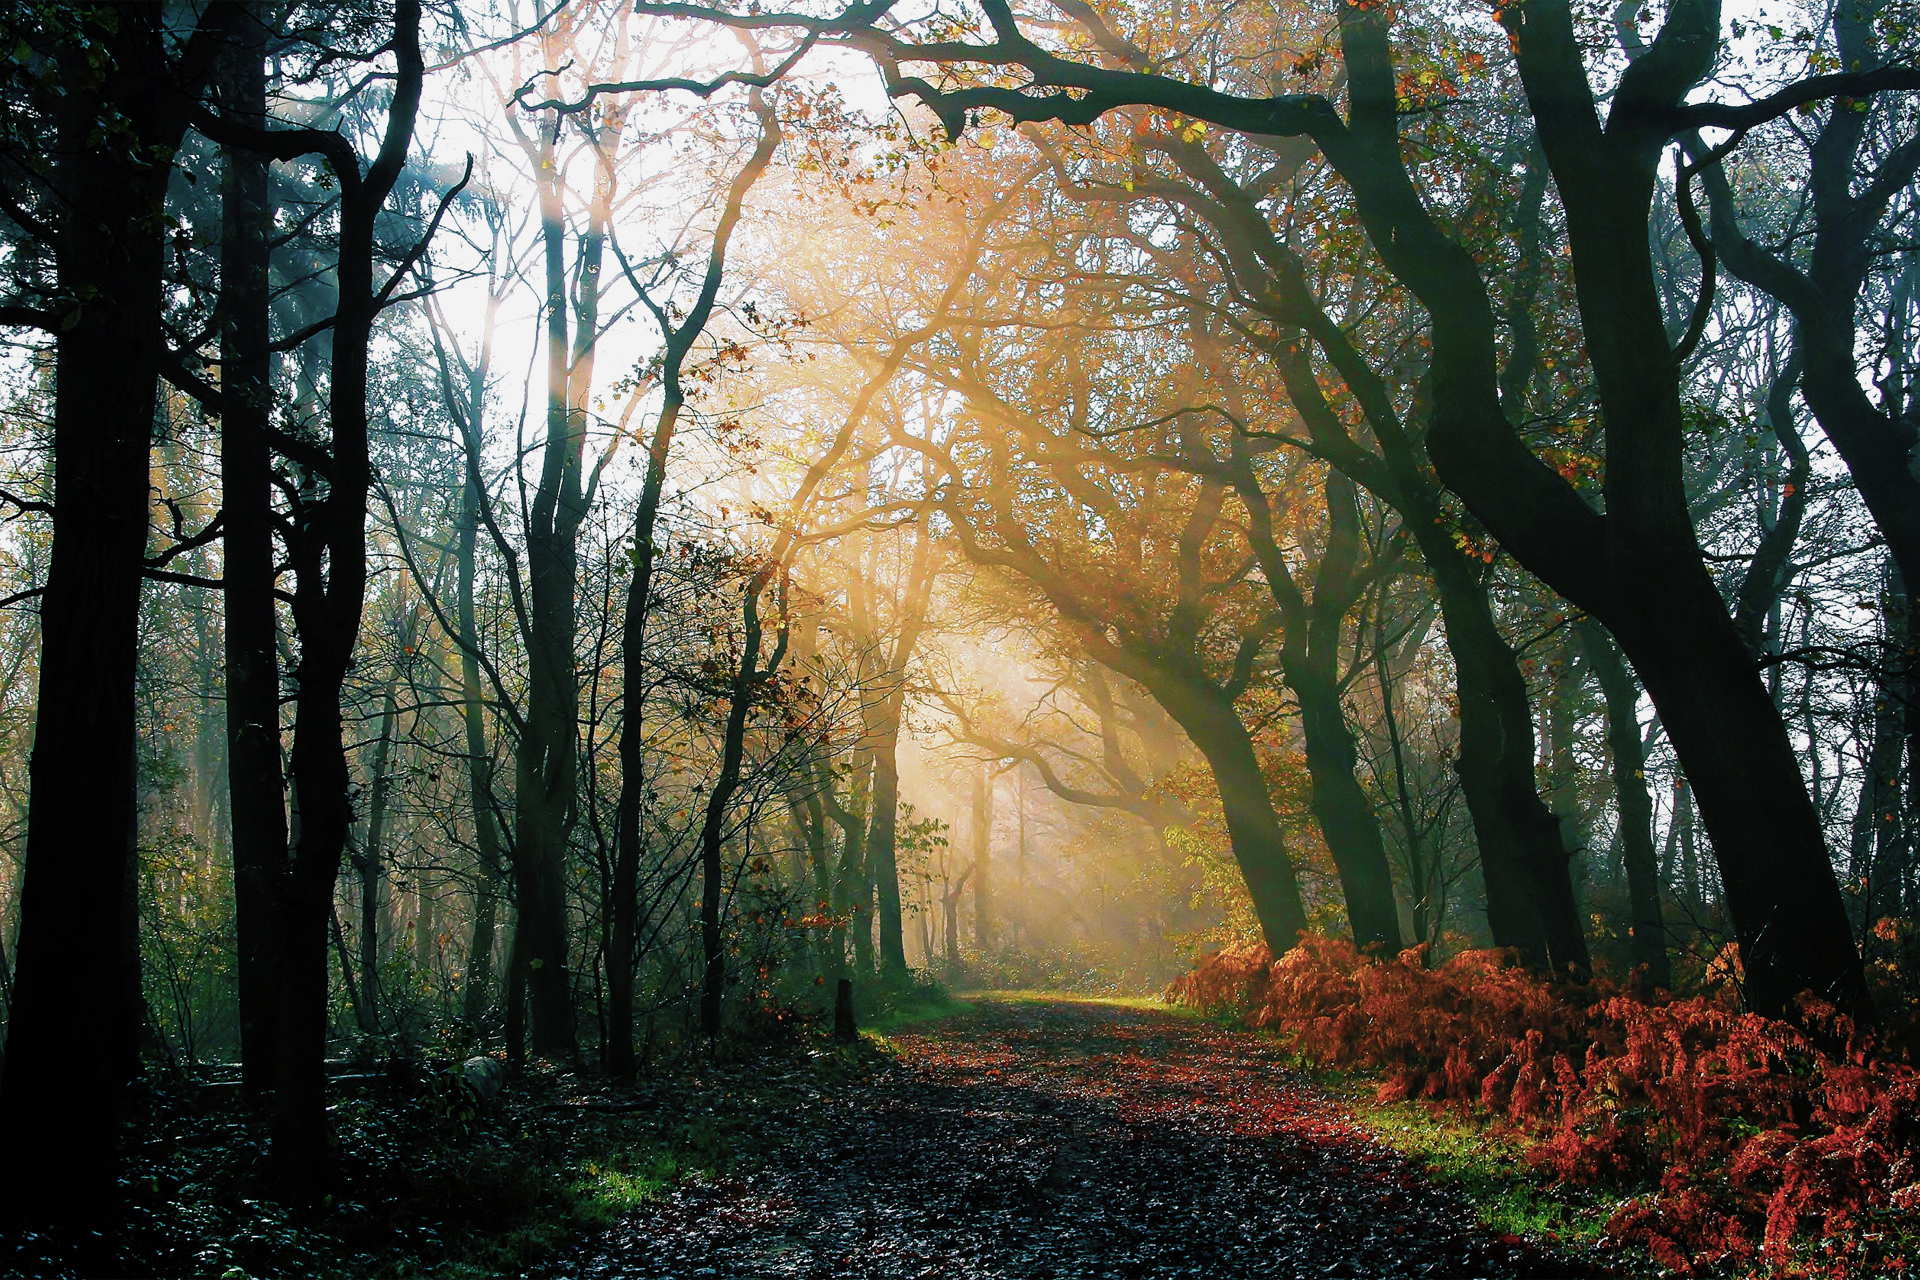 nature forest night autumn after the rain the road the light rays jpg 1524